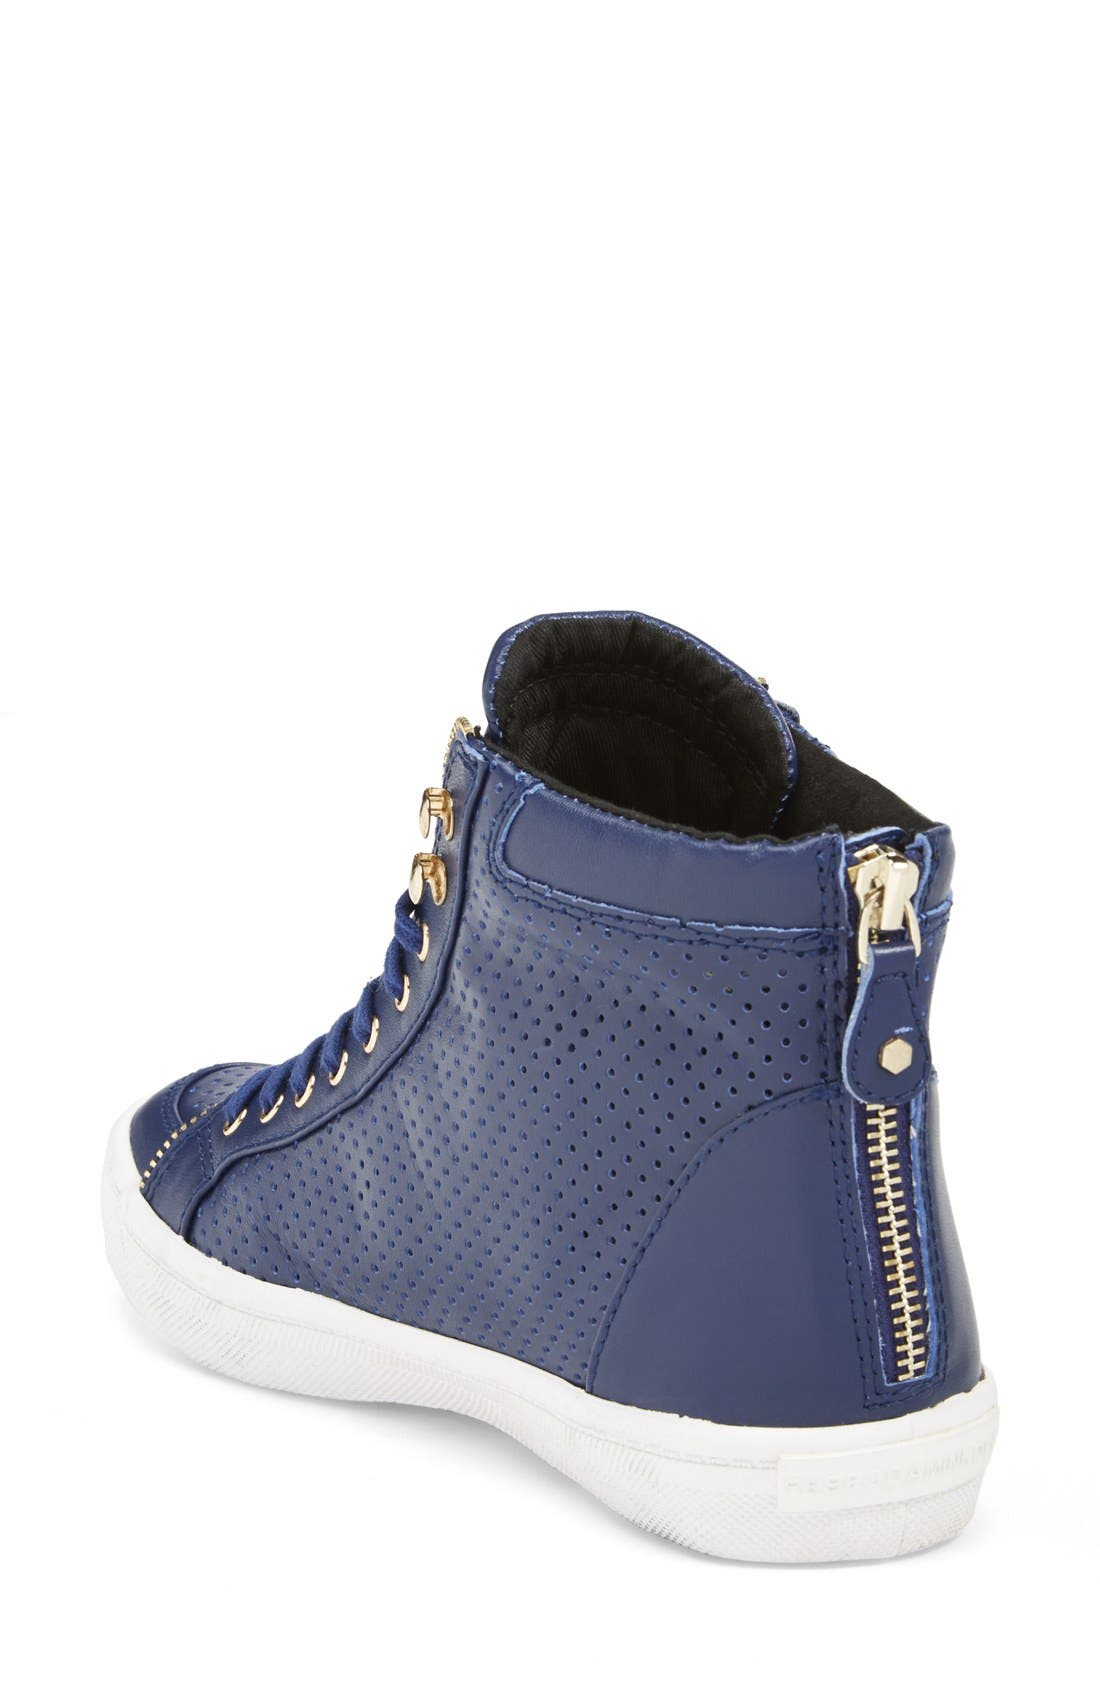 Alternate Image 2  - Rebecca Minkoff 'Sandi' Perforated & Quilted Leather High Top Sneaker (Women)